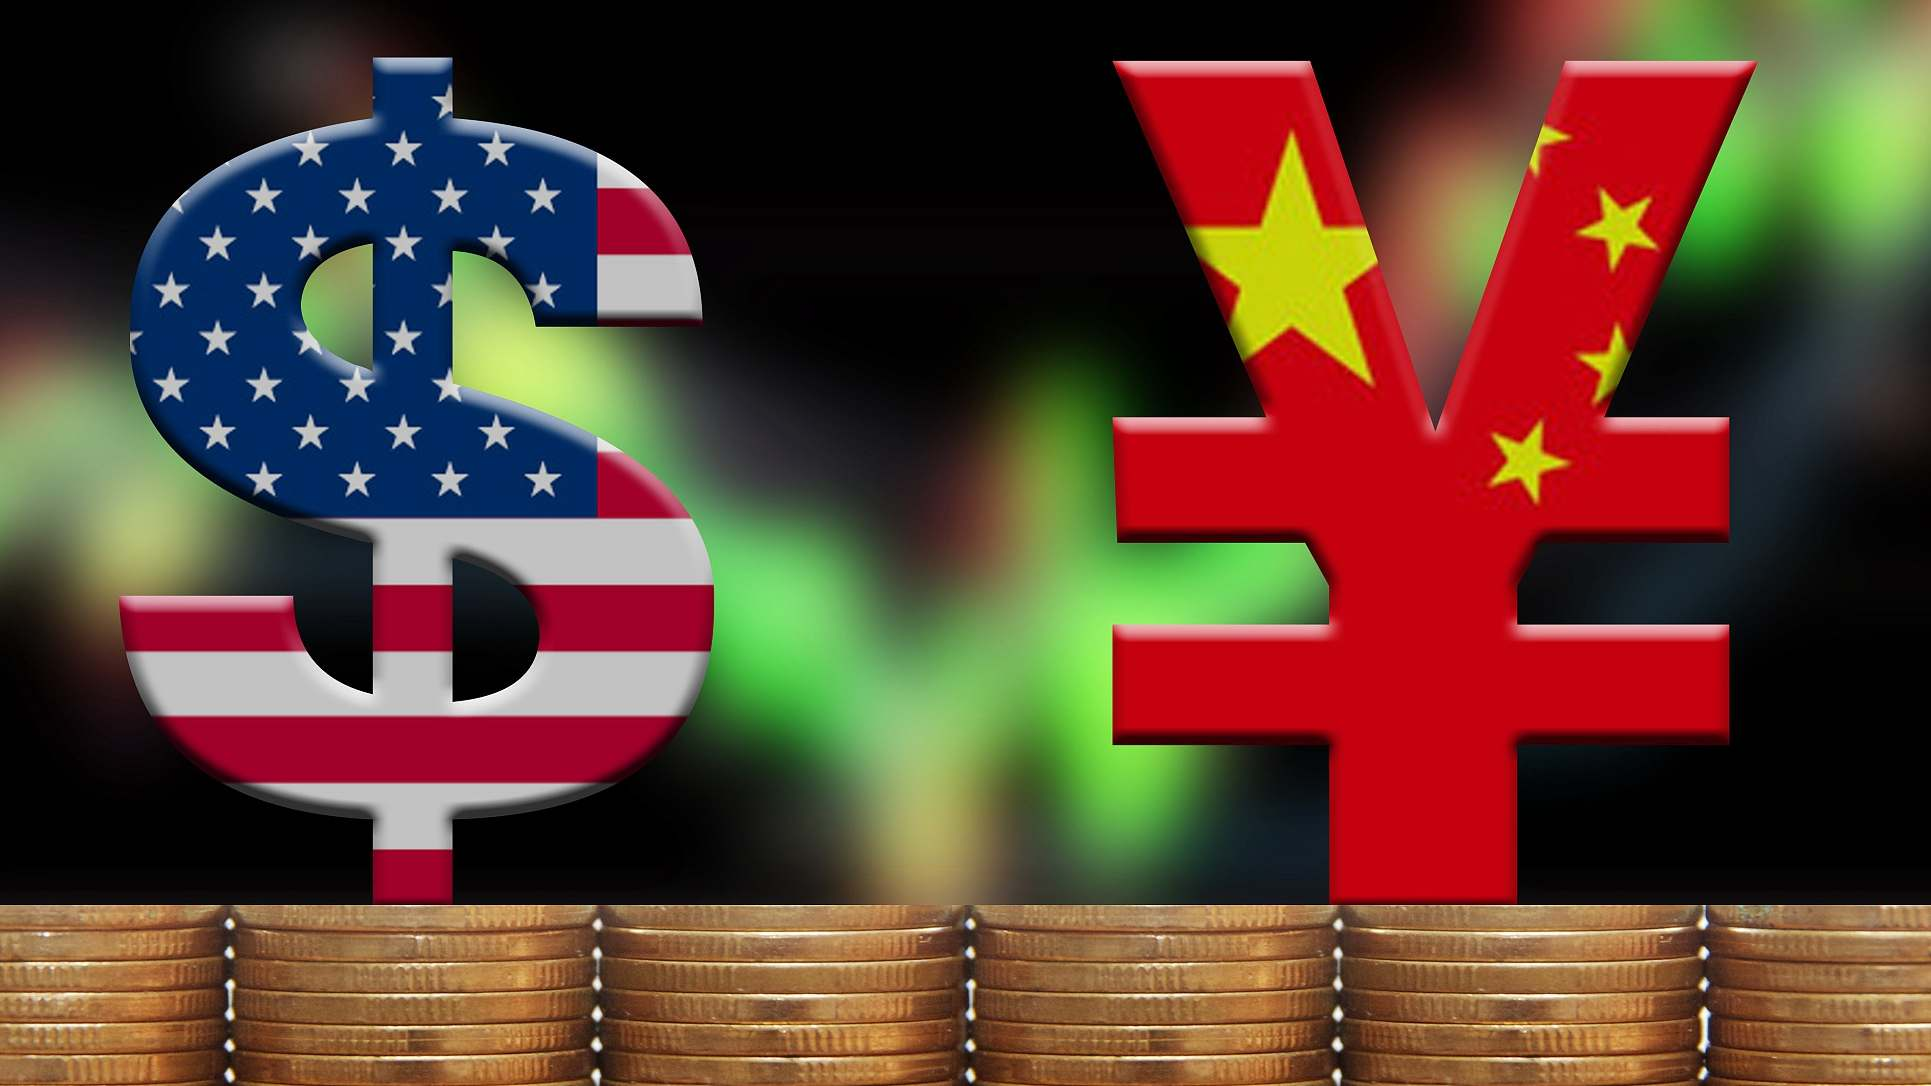 US says China is not a currency manipulator. Why?